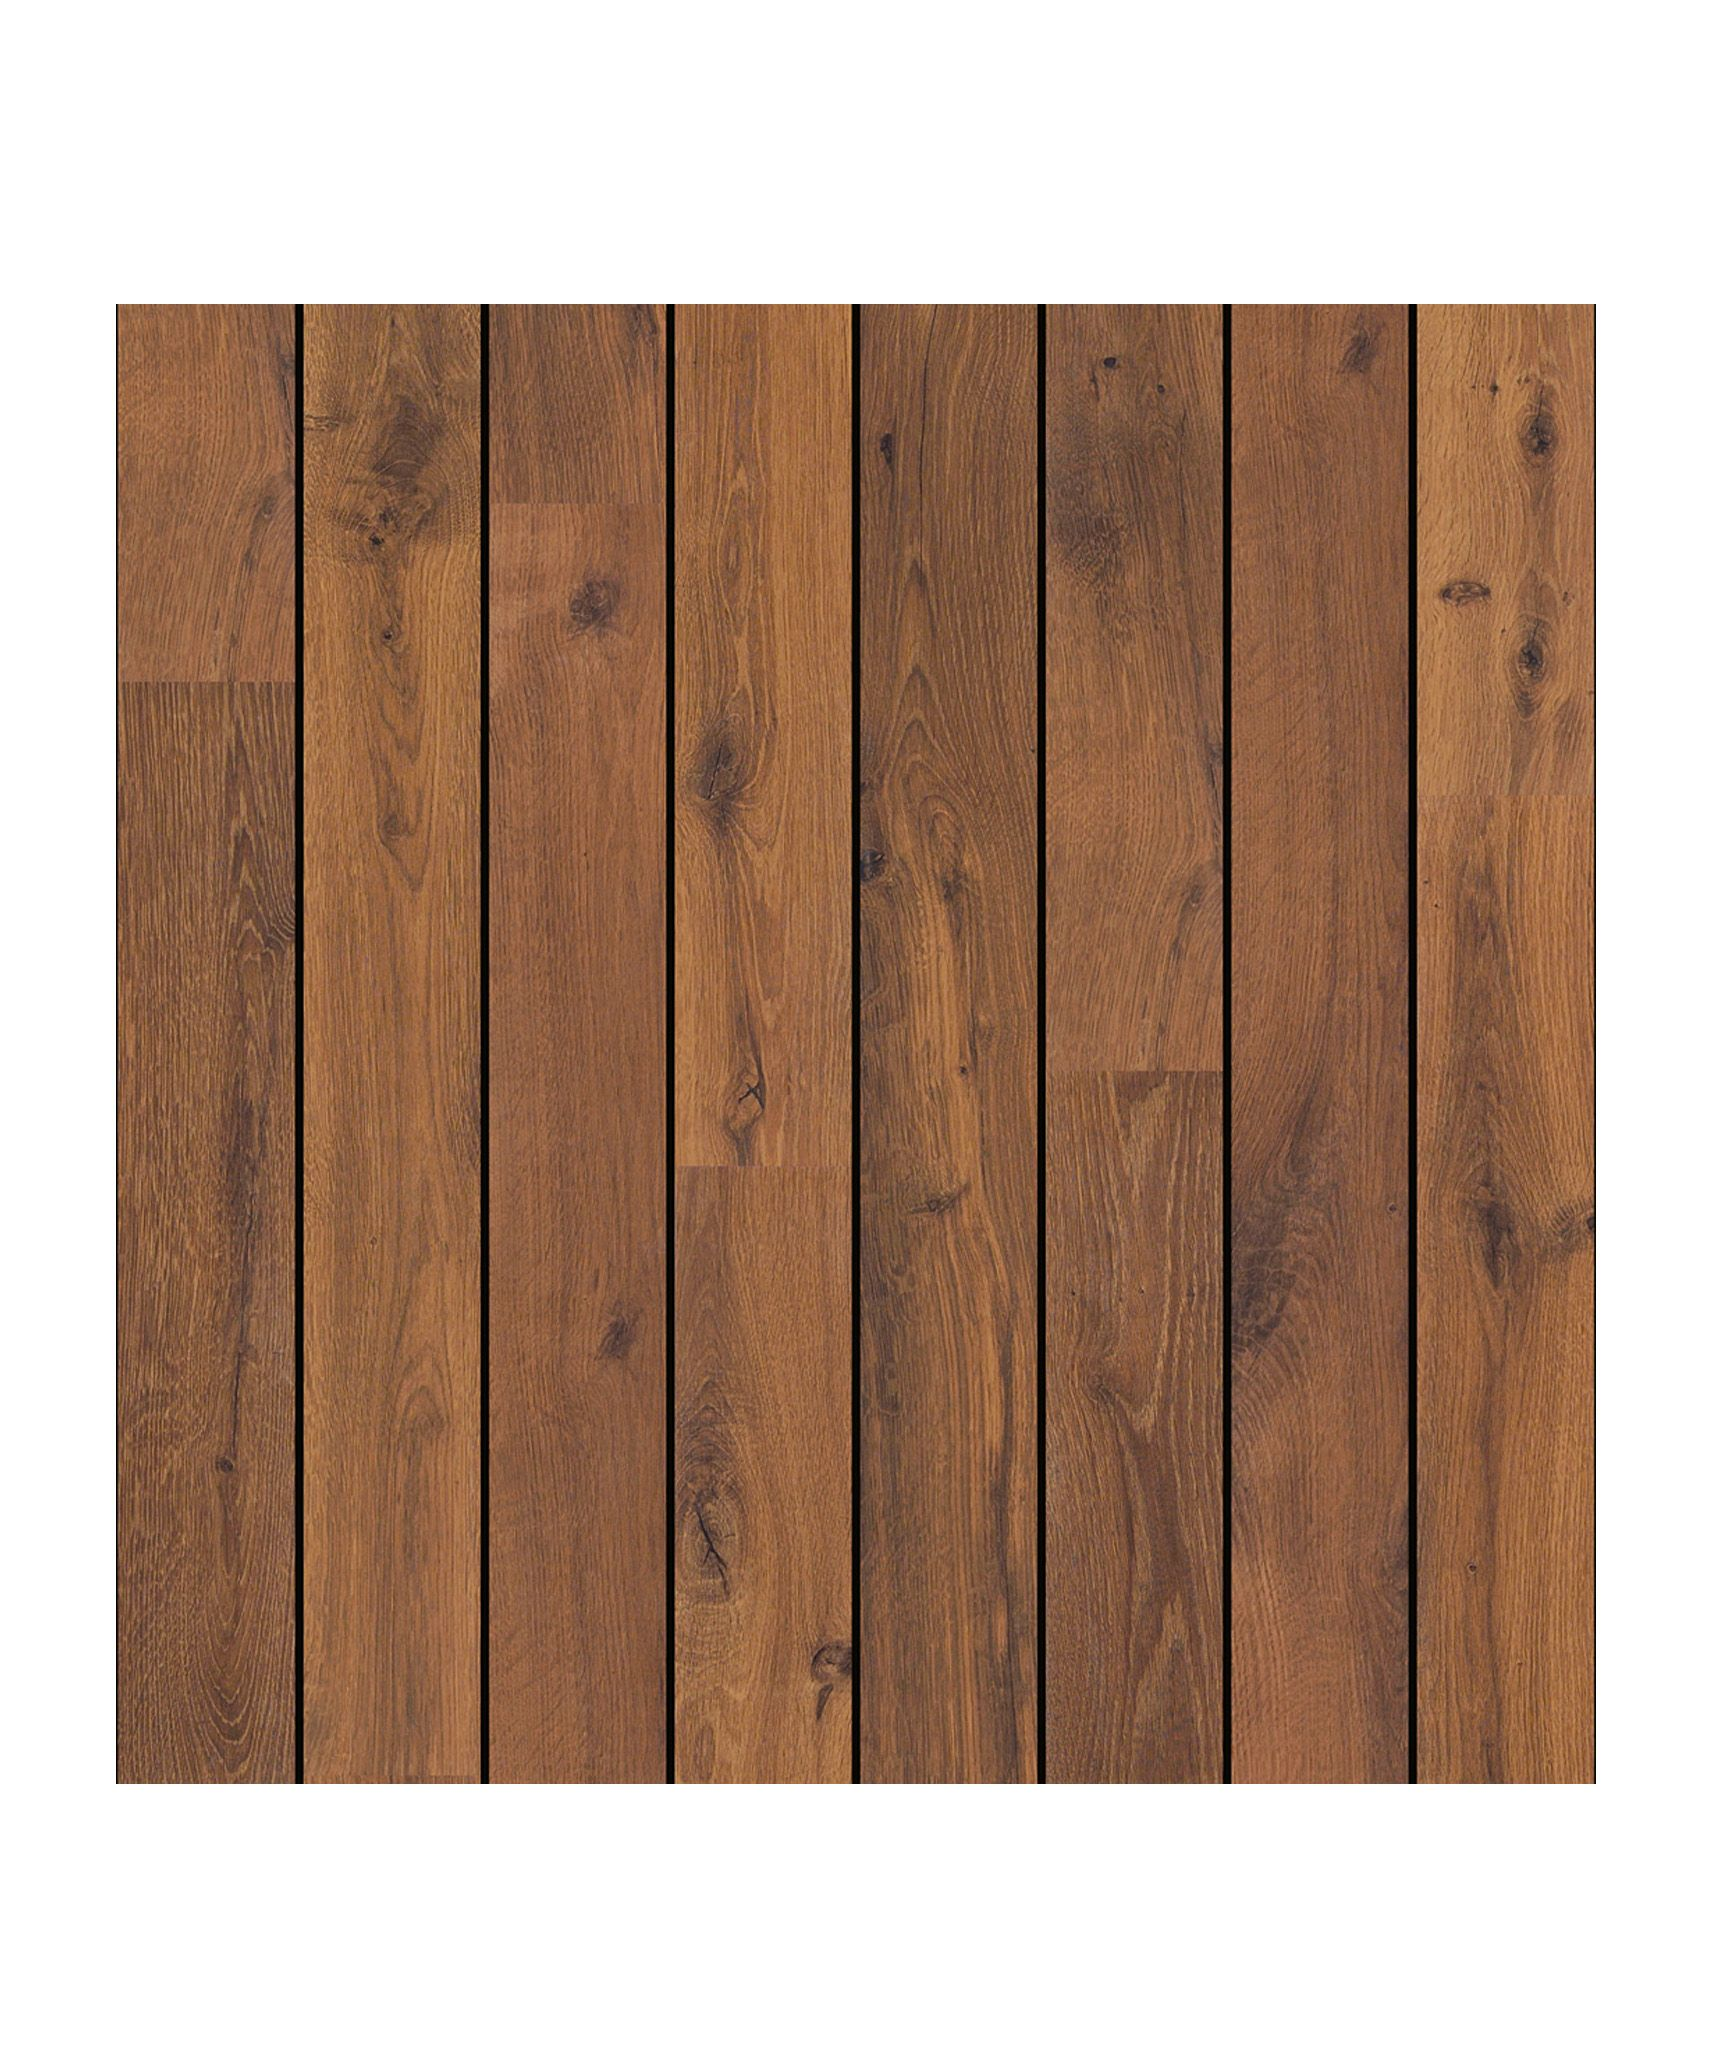 Quick step 800 lagune vintage oak dark varnished ship deck topps ship deck flooring for bathrooms dailygadgetfo Choice Image